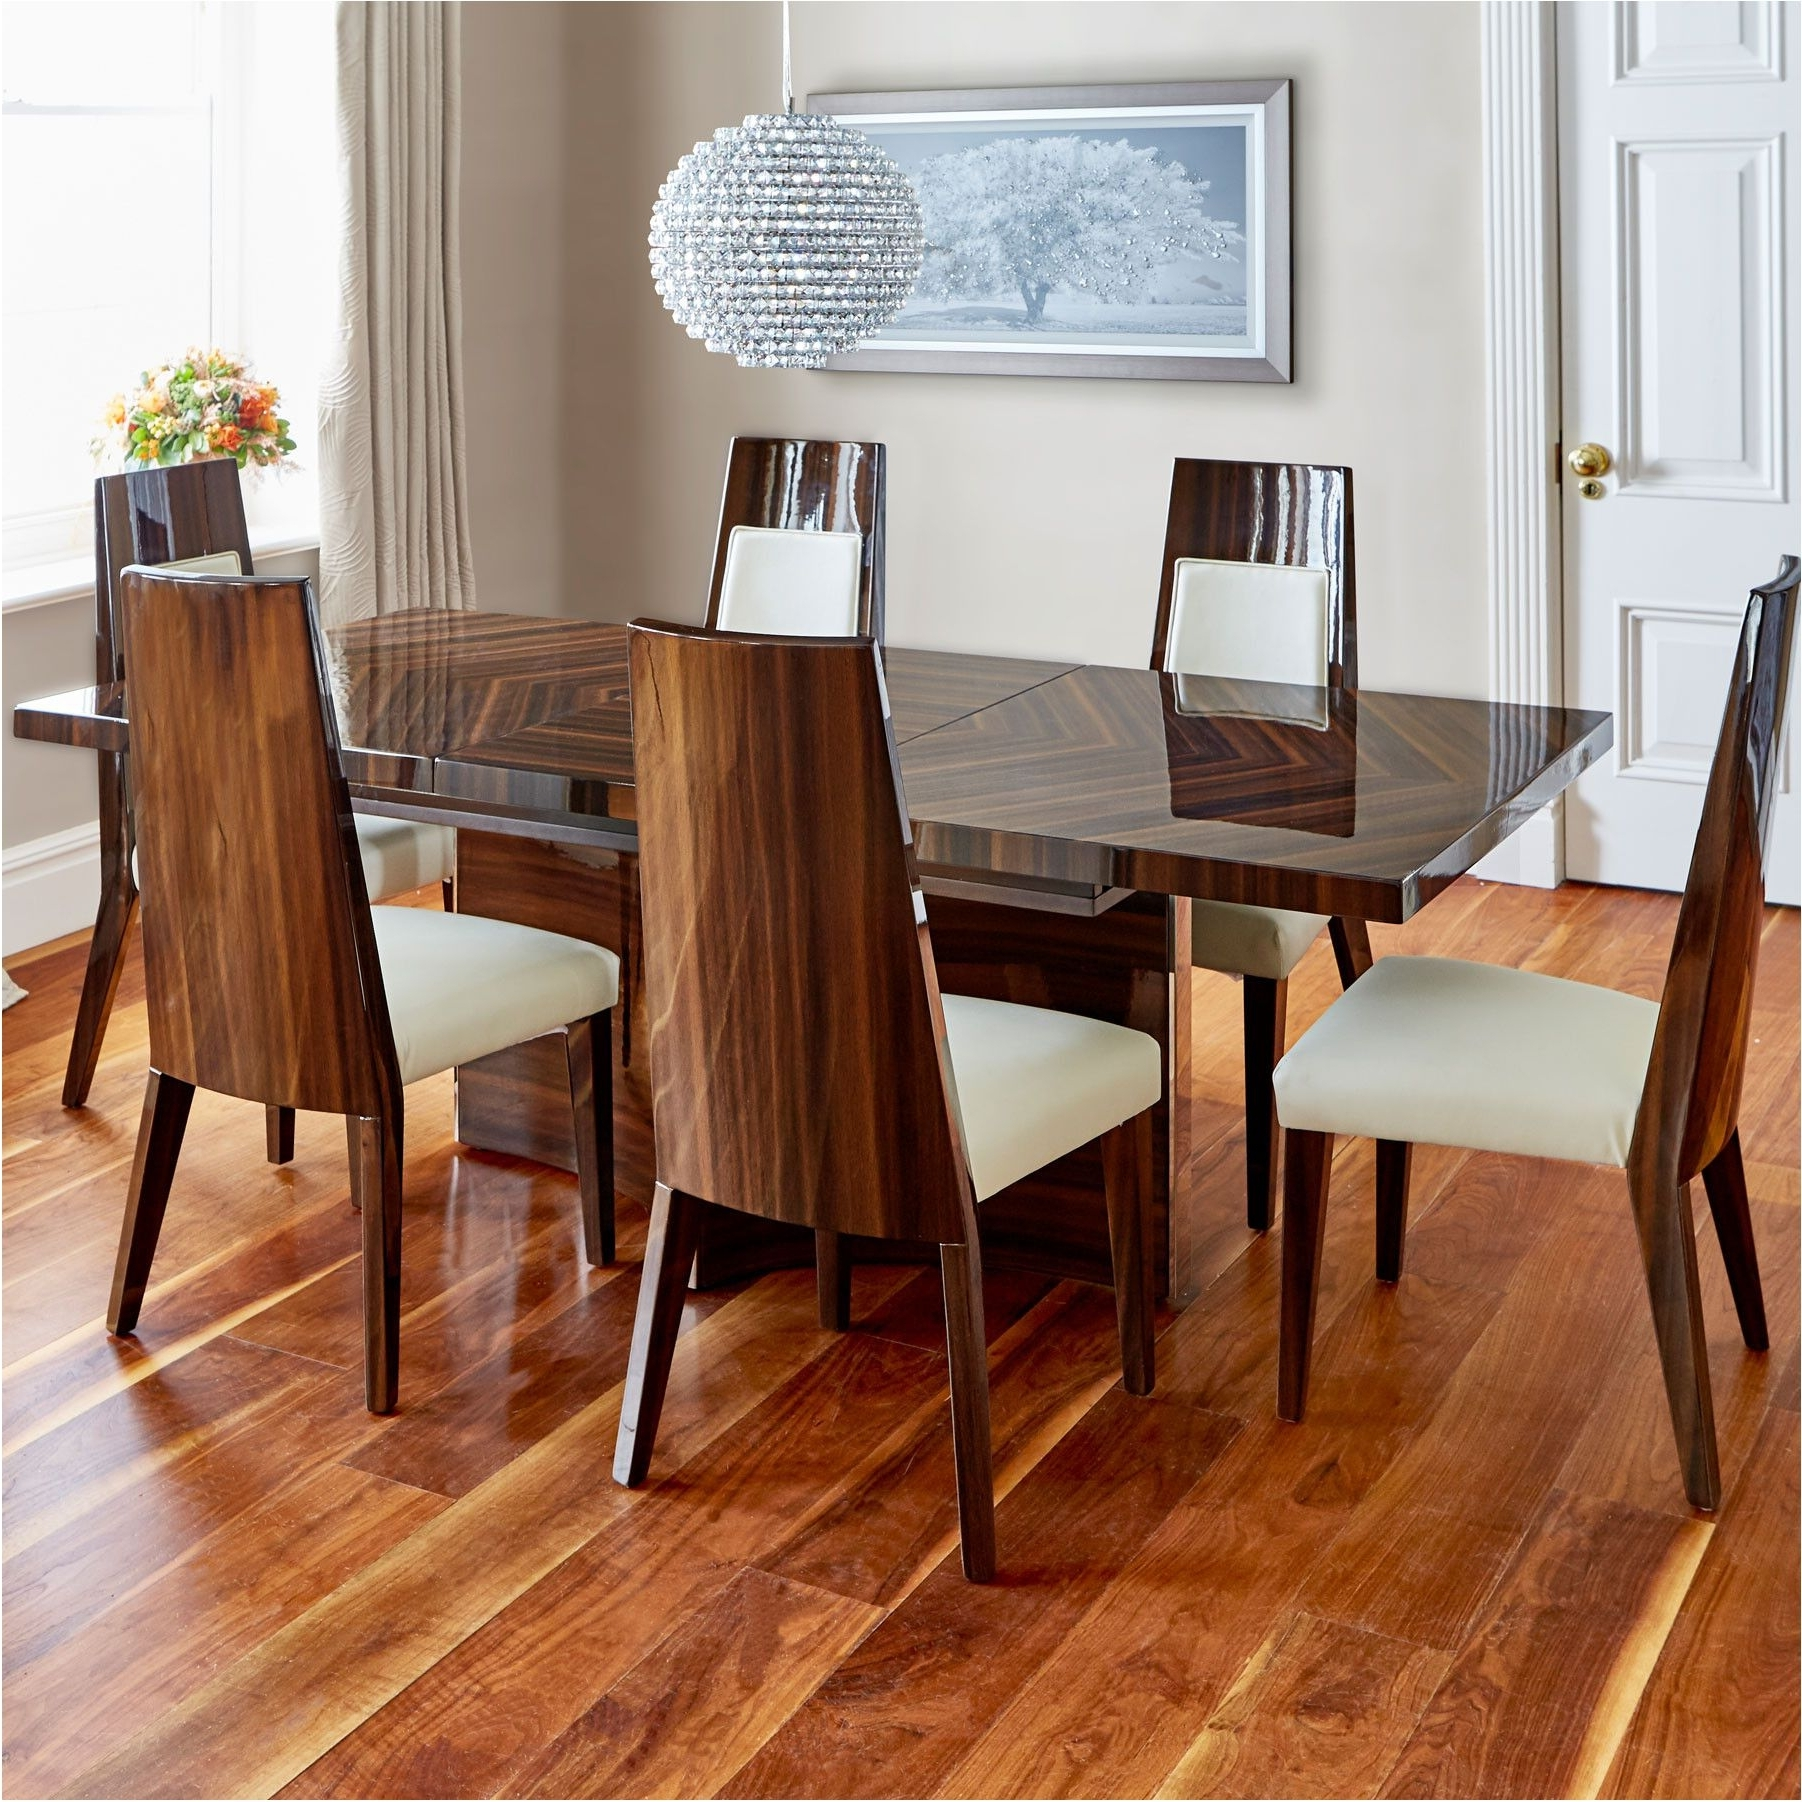 Most Up To Date Best Alexis High Gloss Walnut Dining Table And 6 Chairs – Walnut Inside Walnut Dining Tables And 6 Chairs (View 15 of 25)